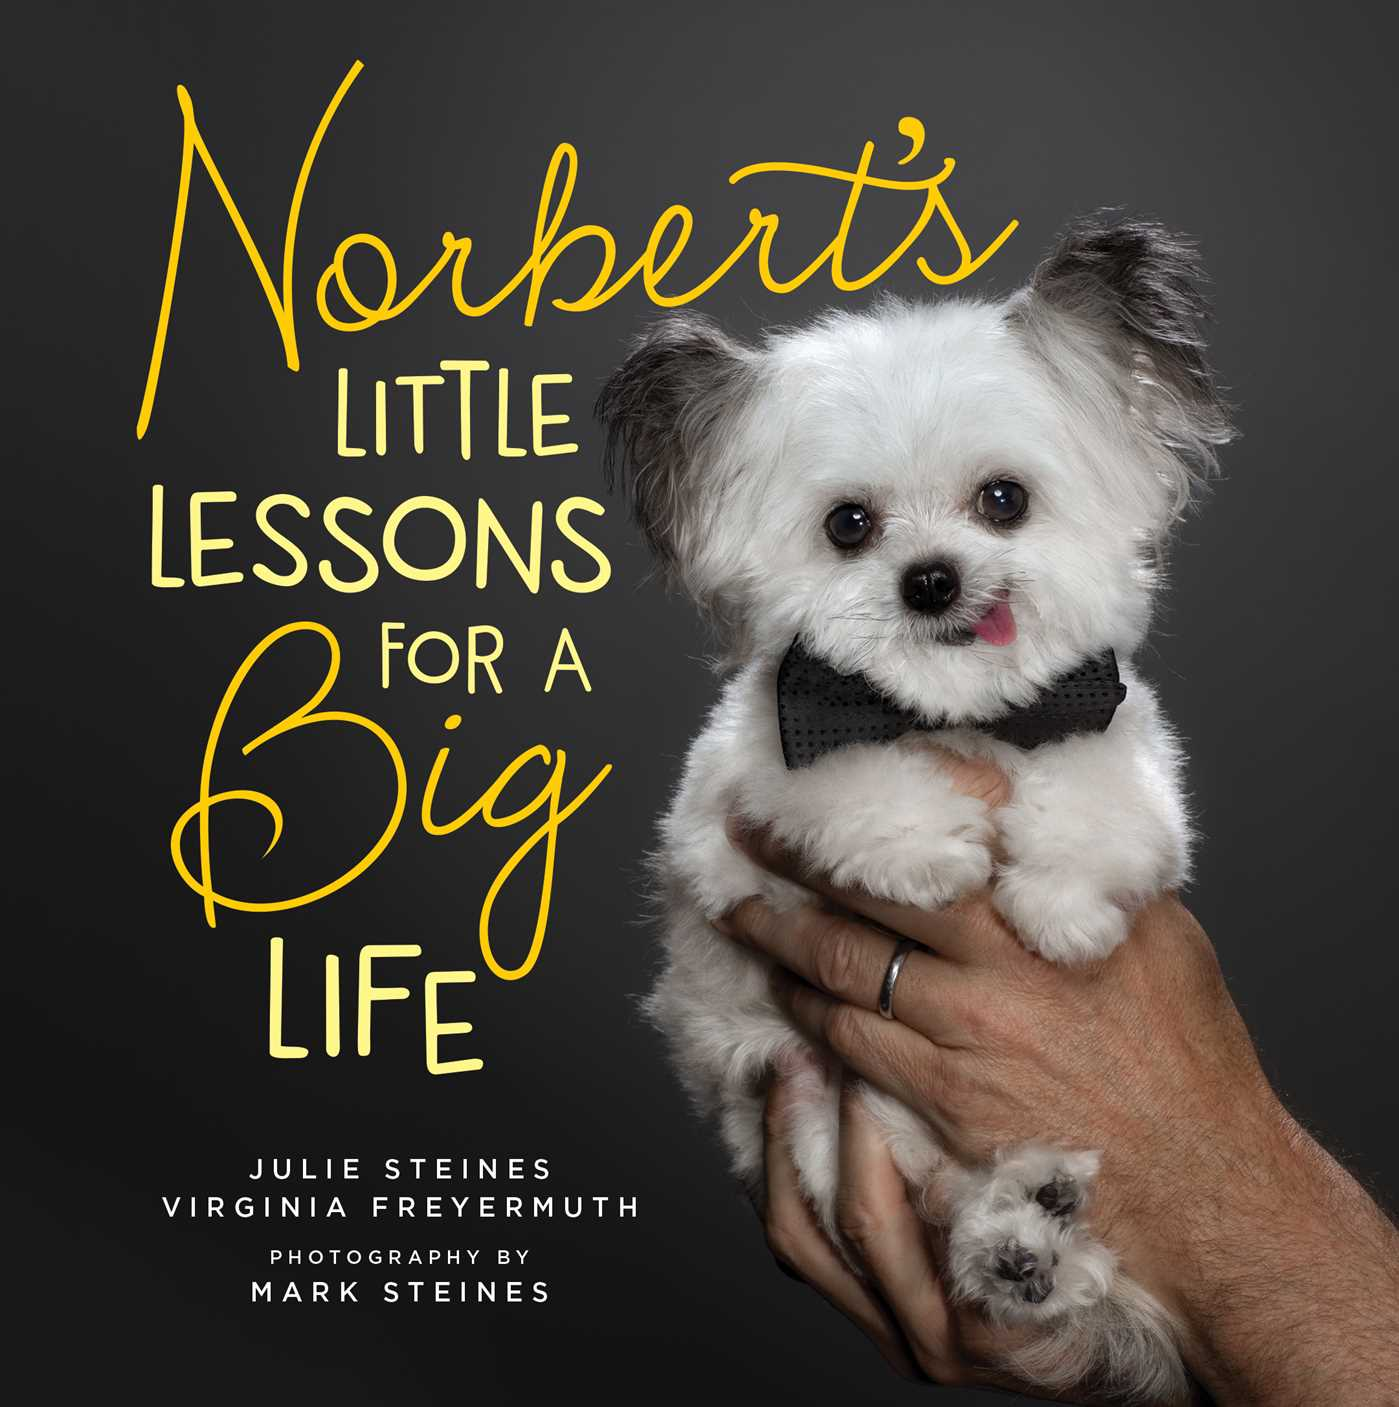 Norbert s little lessons for a big life 9781501187315 hr